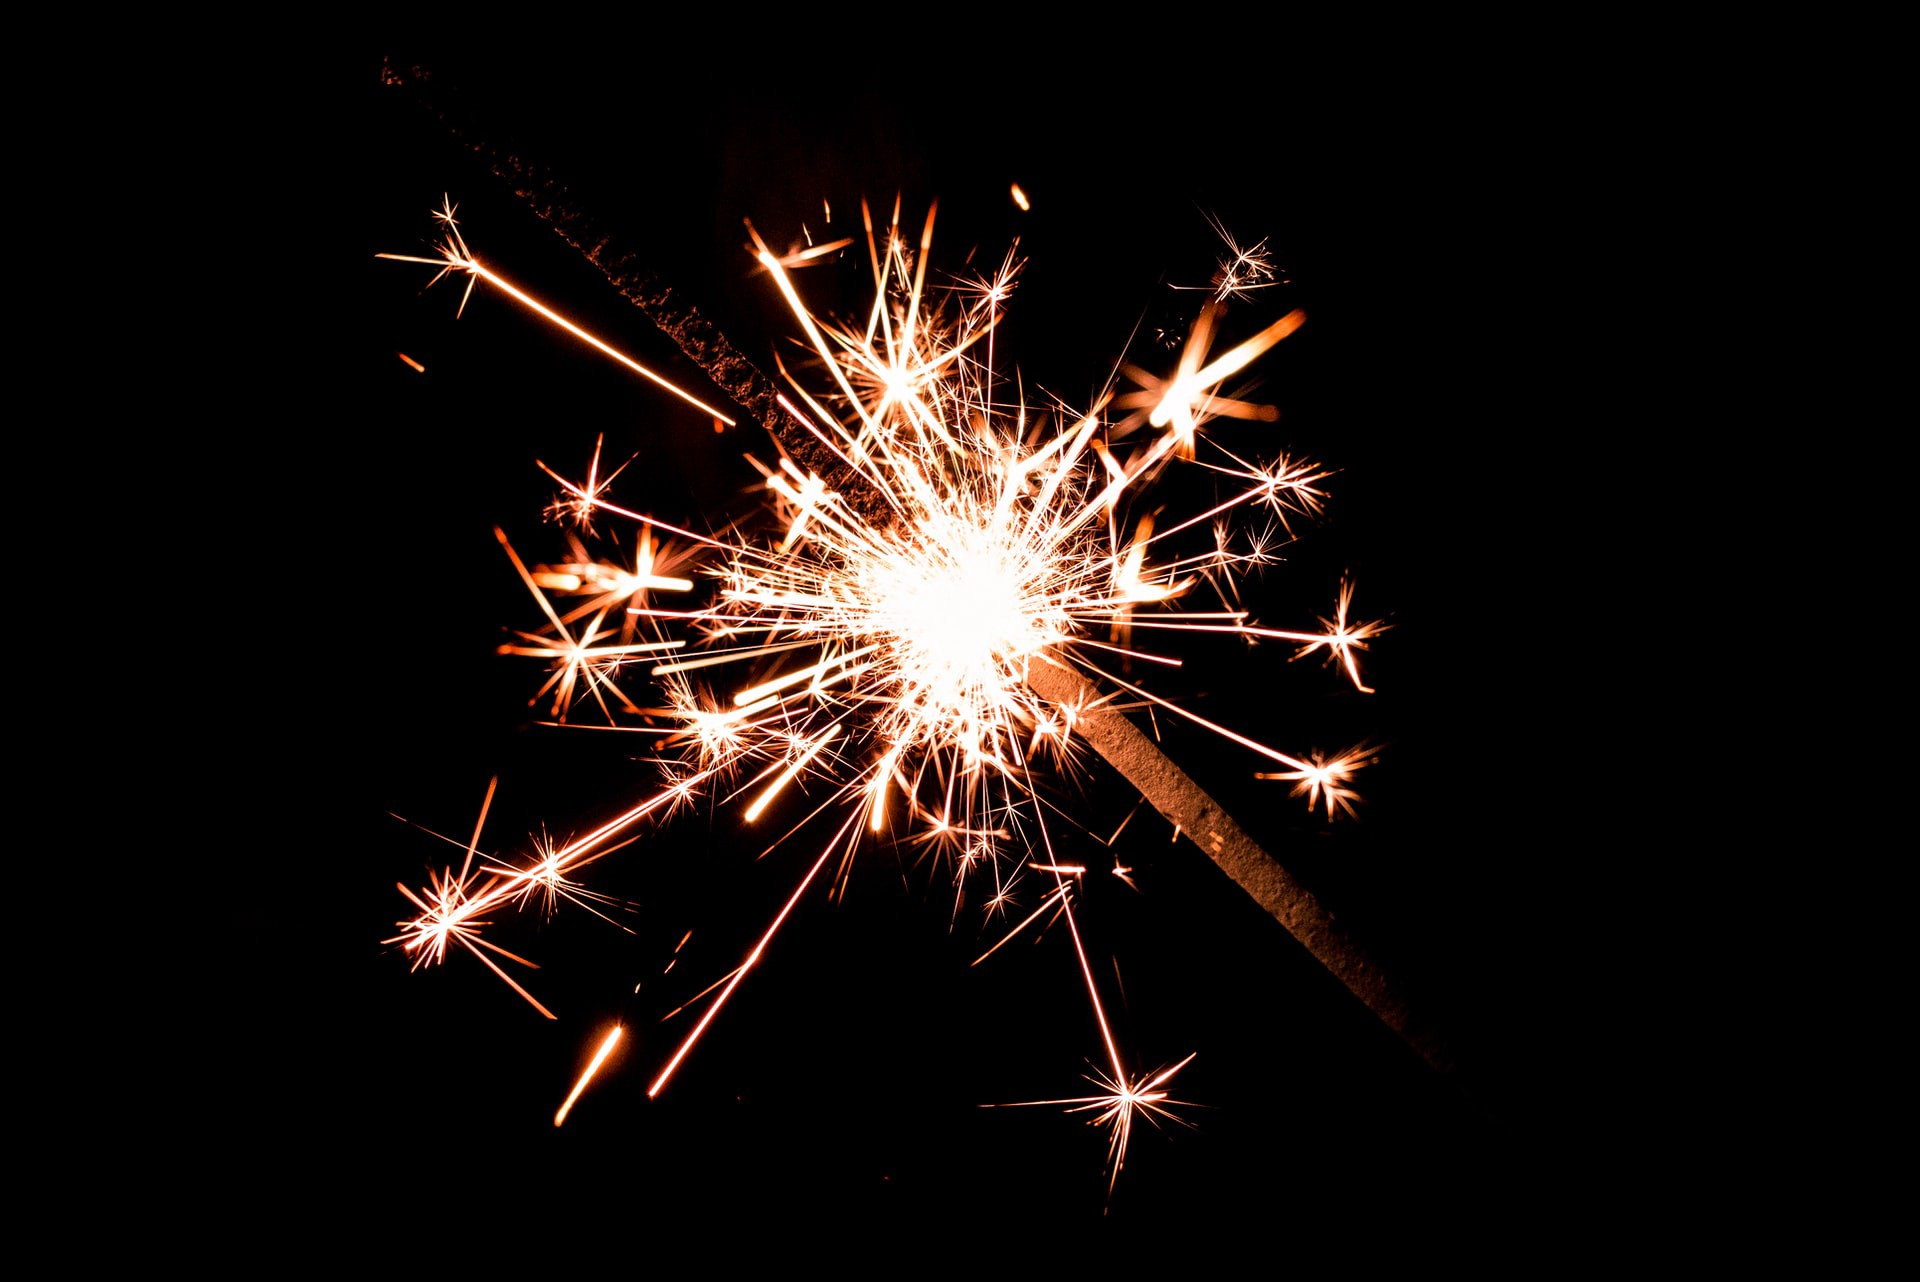 Alt: colour macro photograph of a sparkler burning bright against a dark background. Image credit: Jez Timms | Unsplash